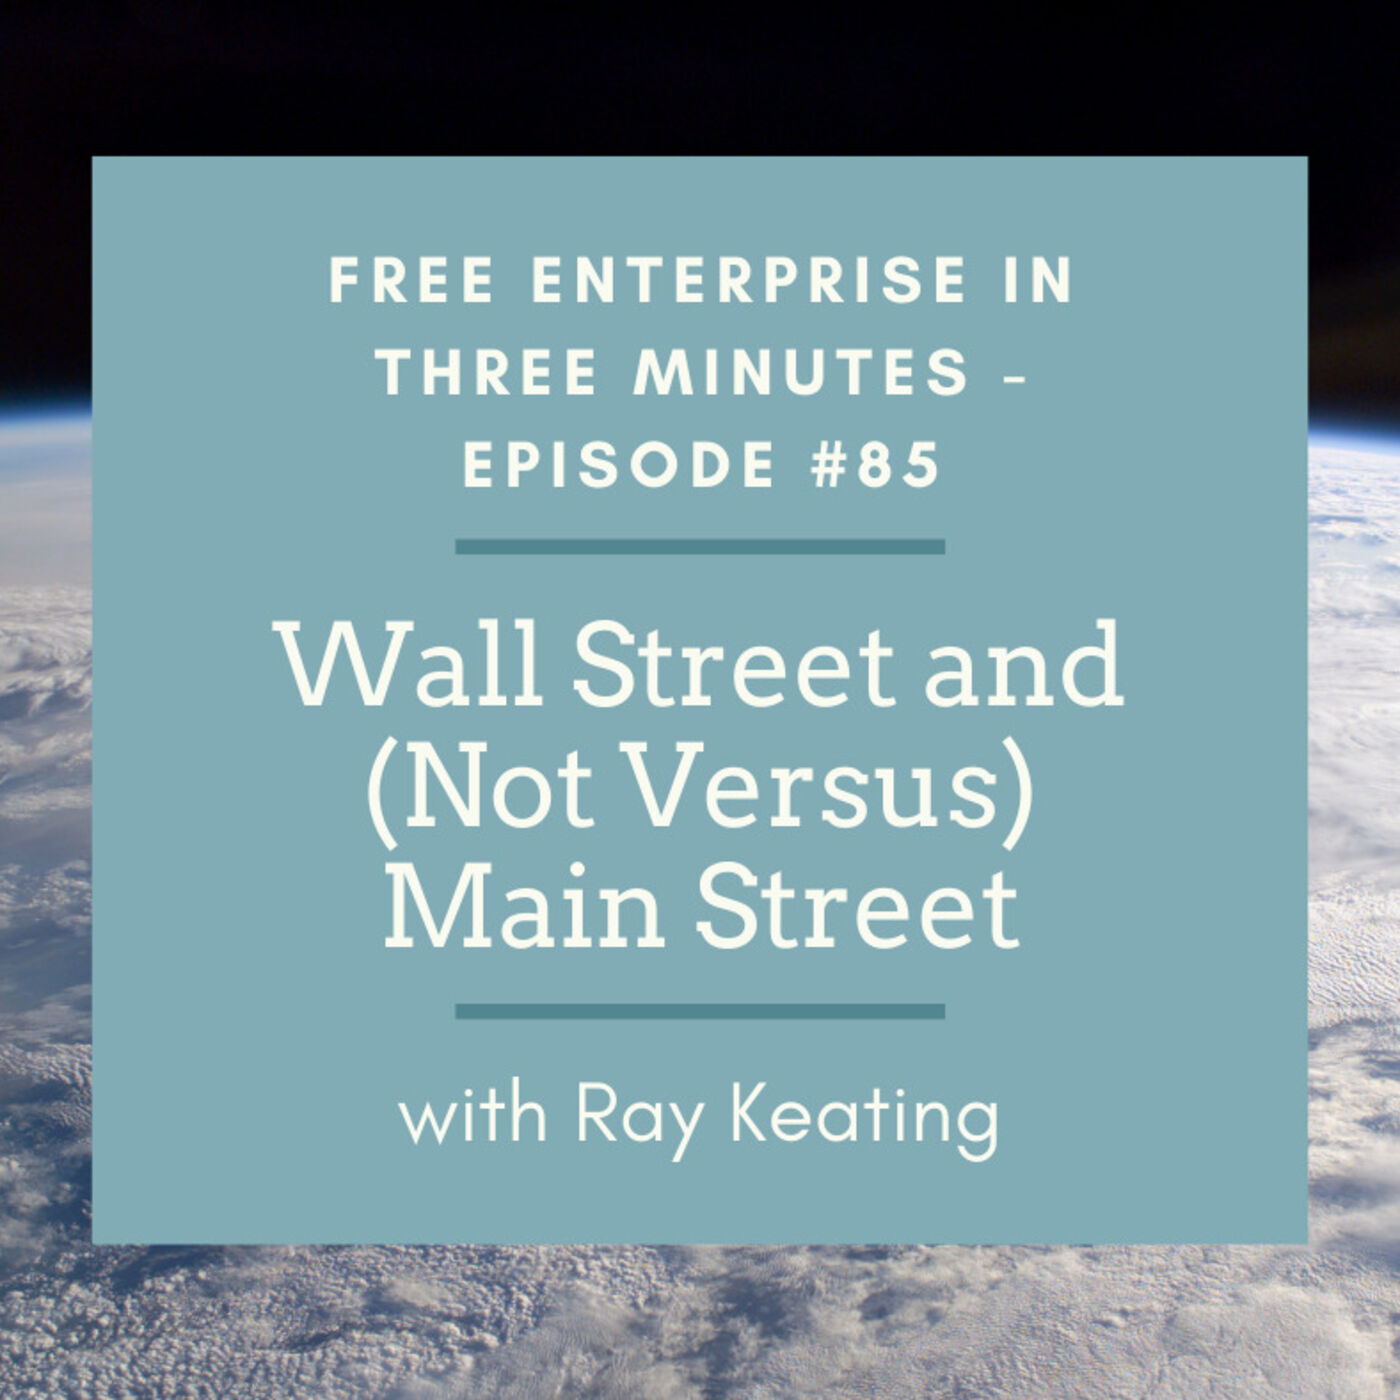 Episode #85: Wall Street and (Not Versus) Main Street